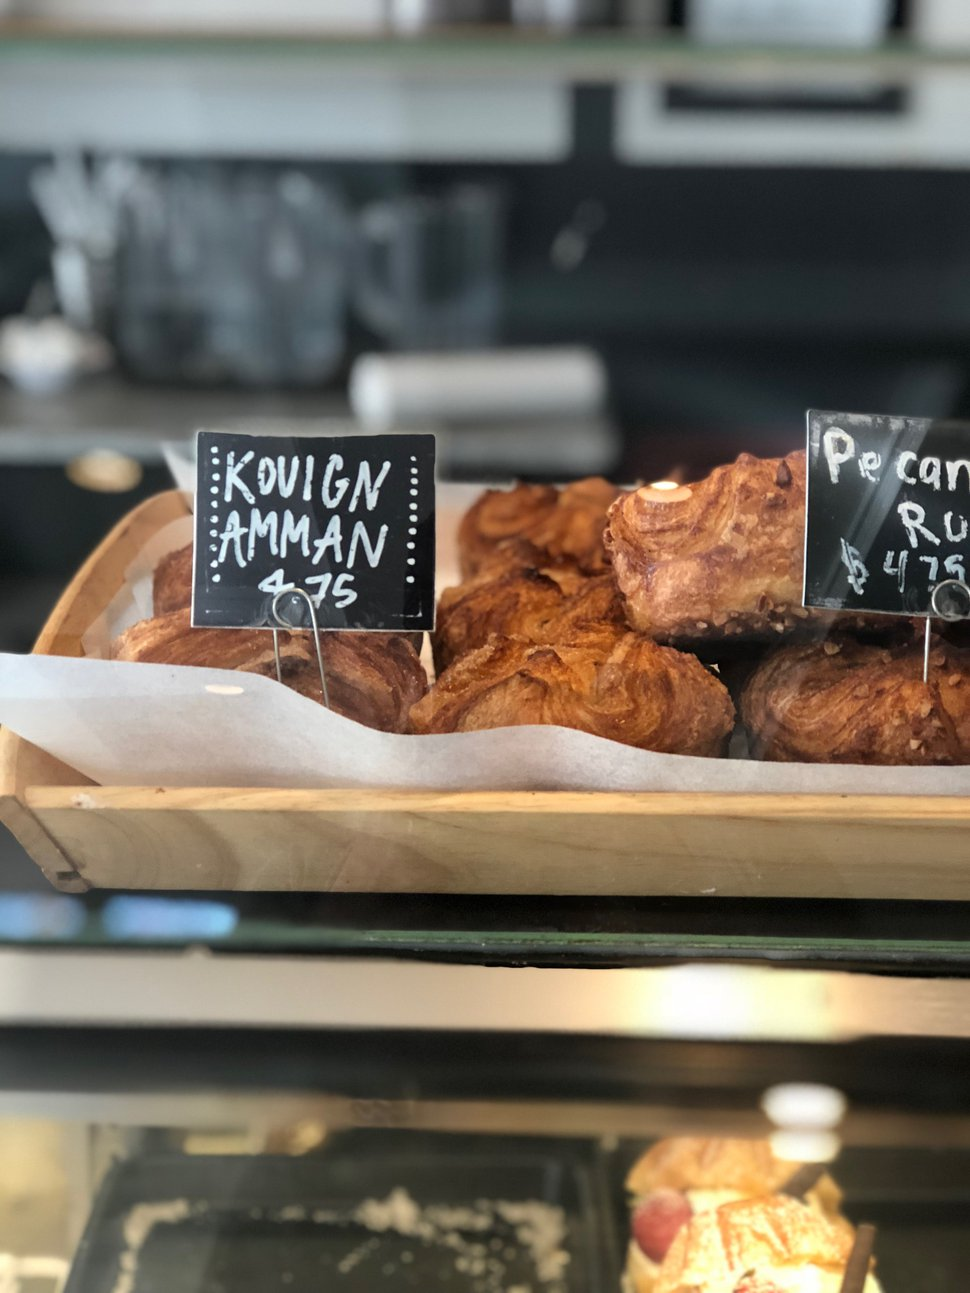 (Brodi Ashton | For the Salt Lake Tribune) The Kouign-amann pastries at Gourmandise Bakery in Salt Lake City.